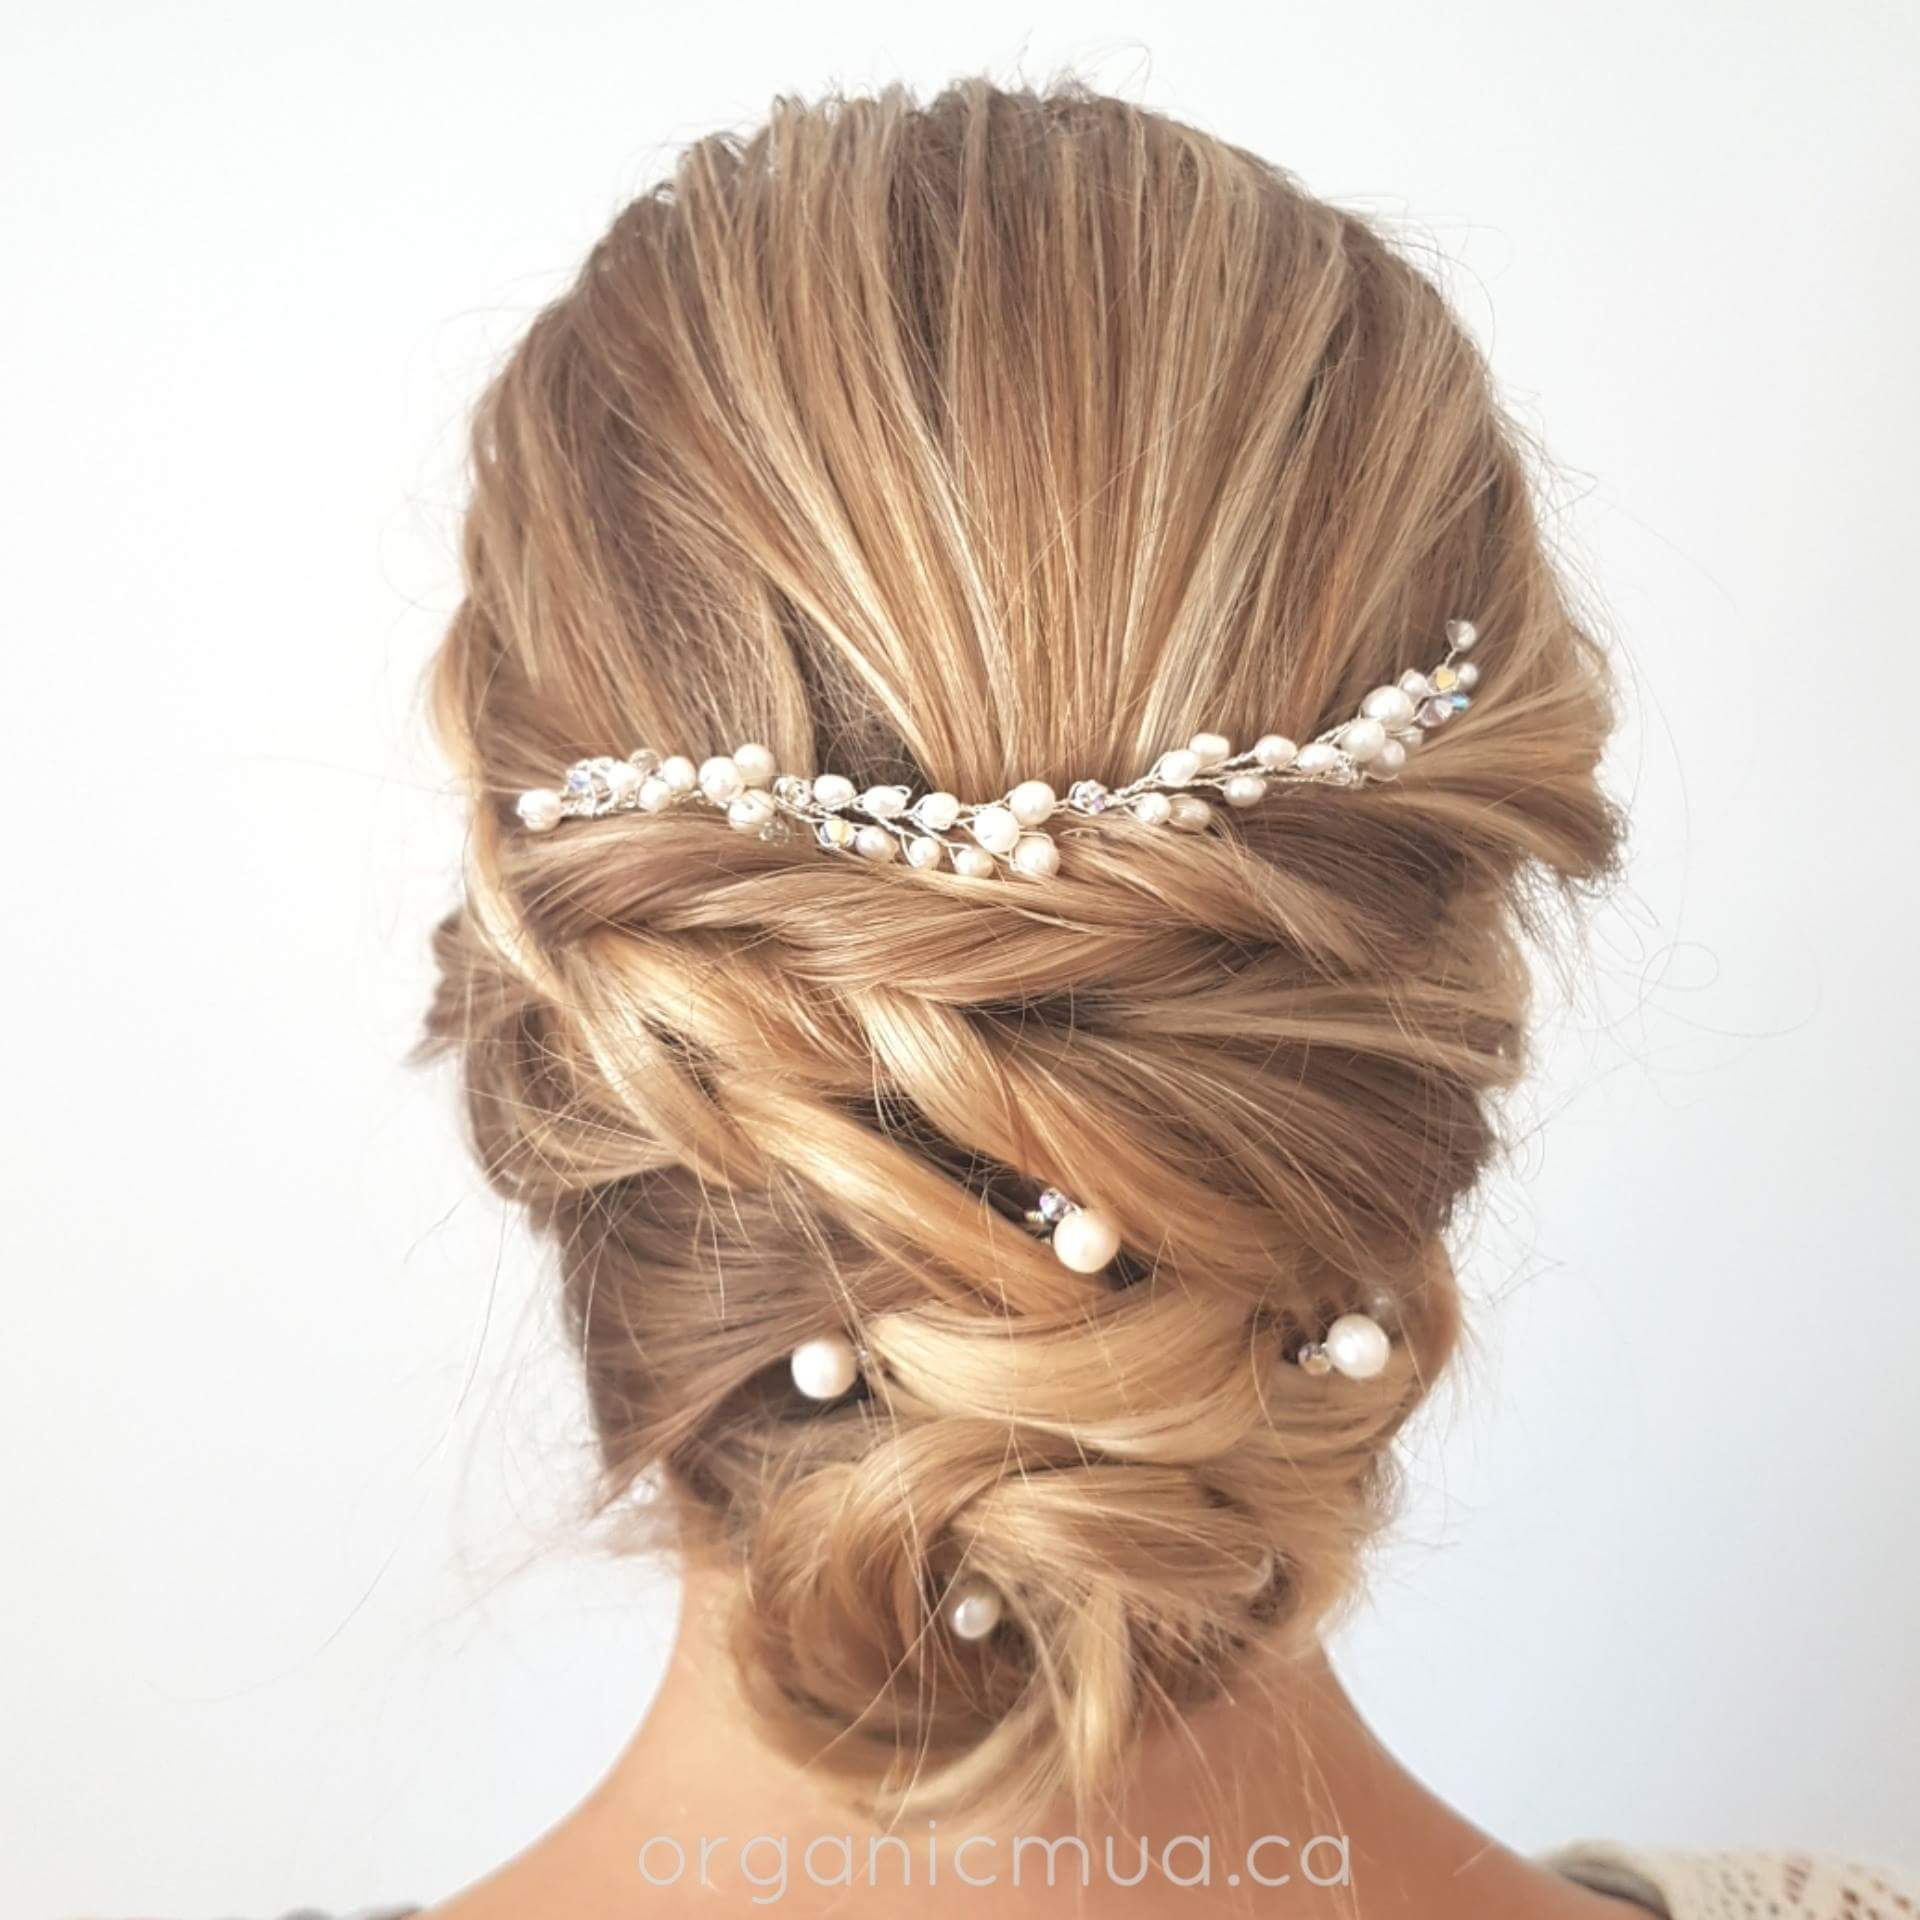 wedding updo blonde hair with pearl hair vine and hair pins by West Coast Jewelry